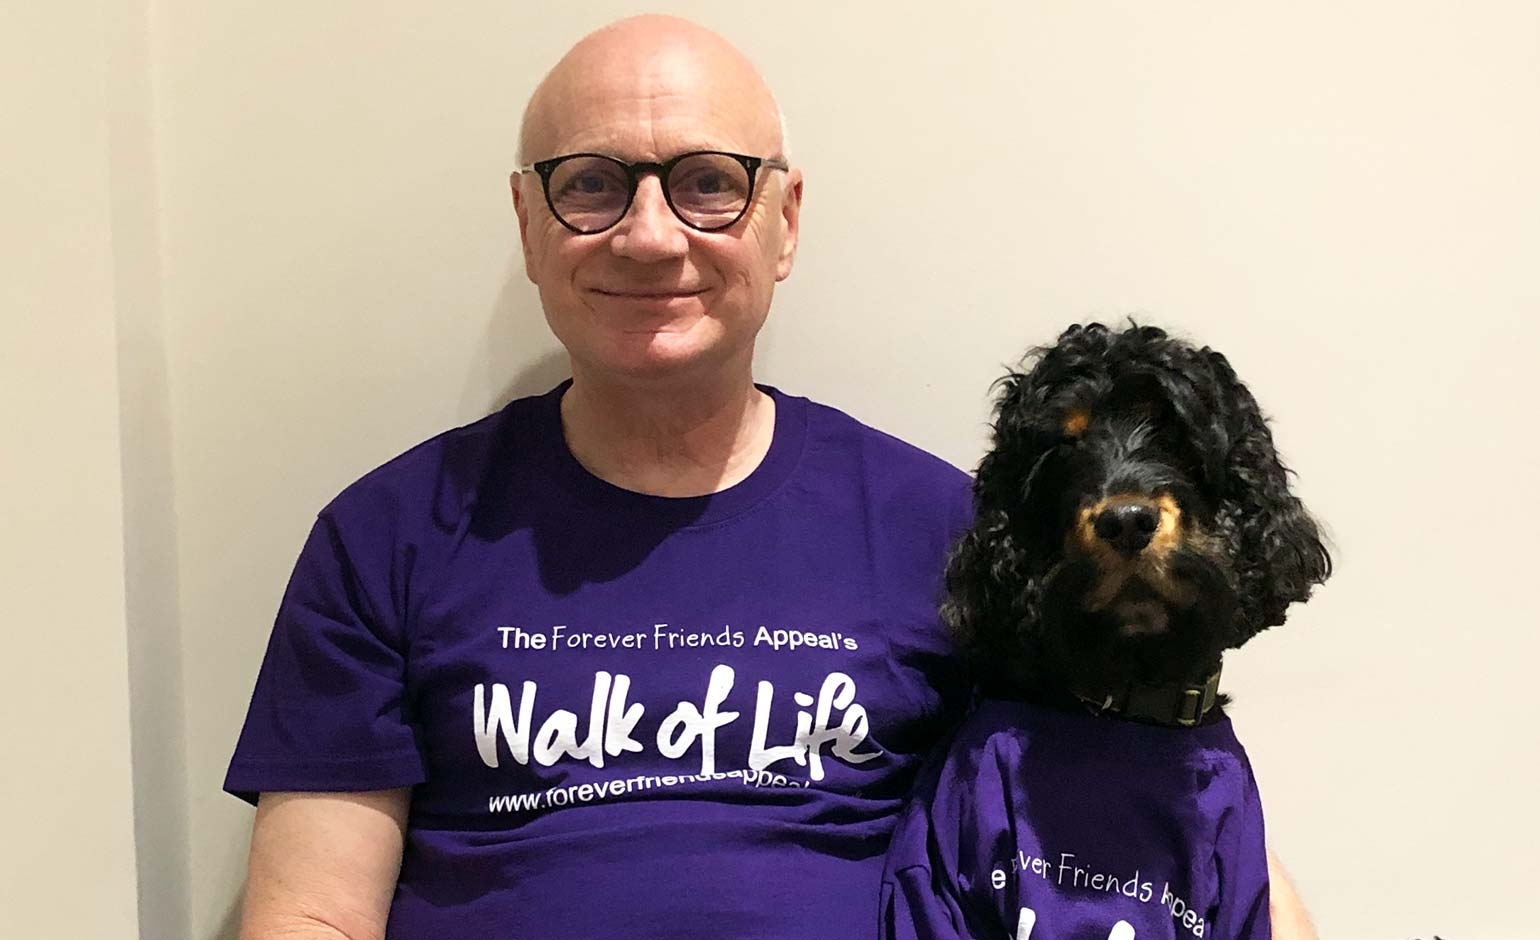 RUH's Chief Executive to join next month's Walk of Life fundraising event